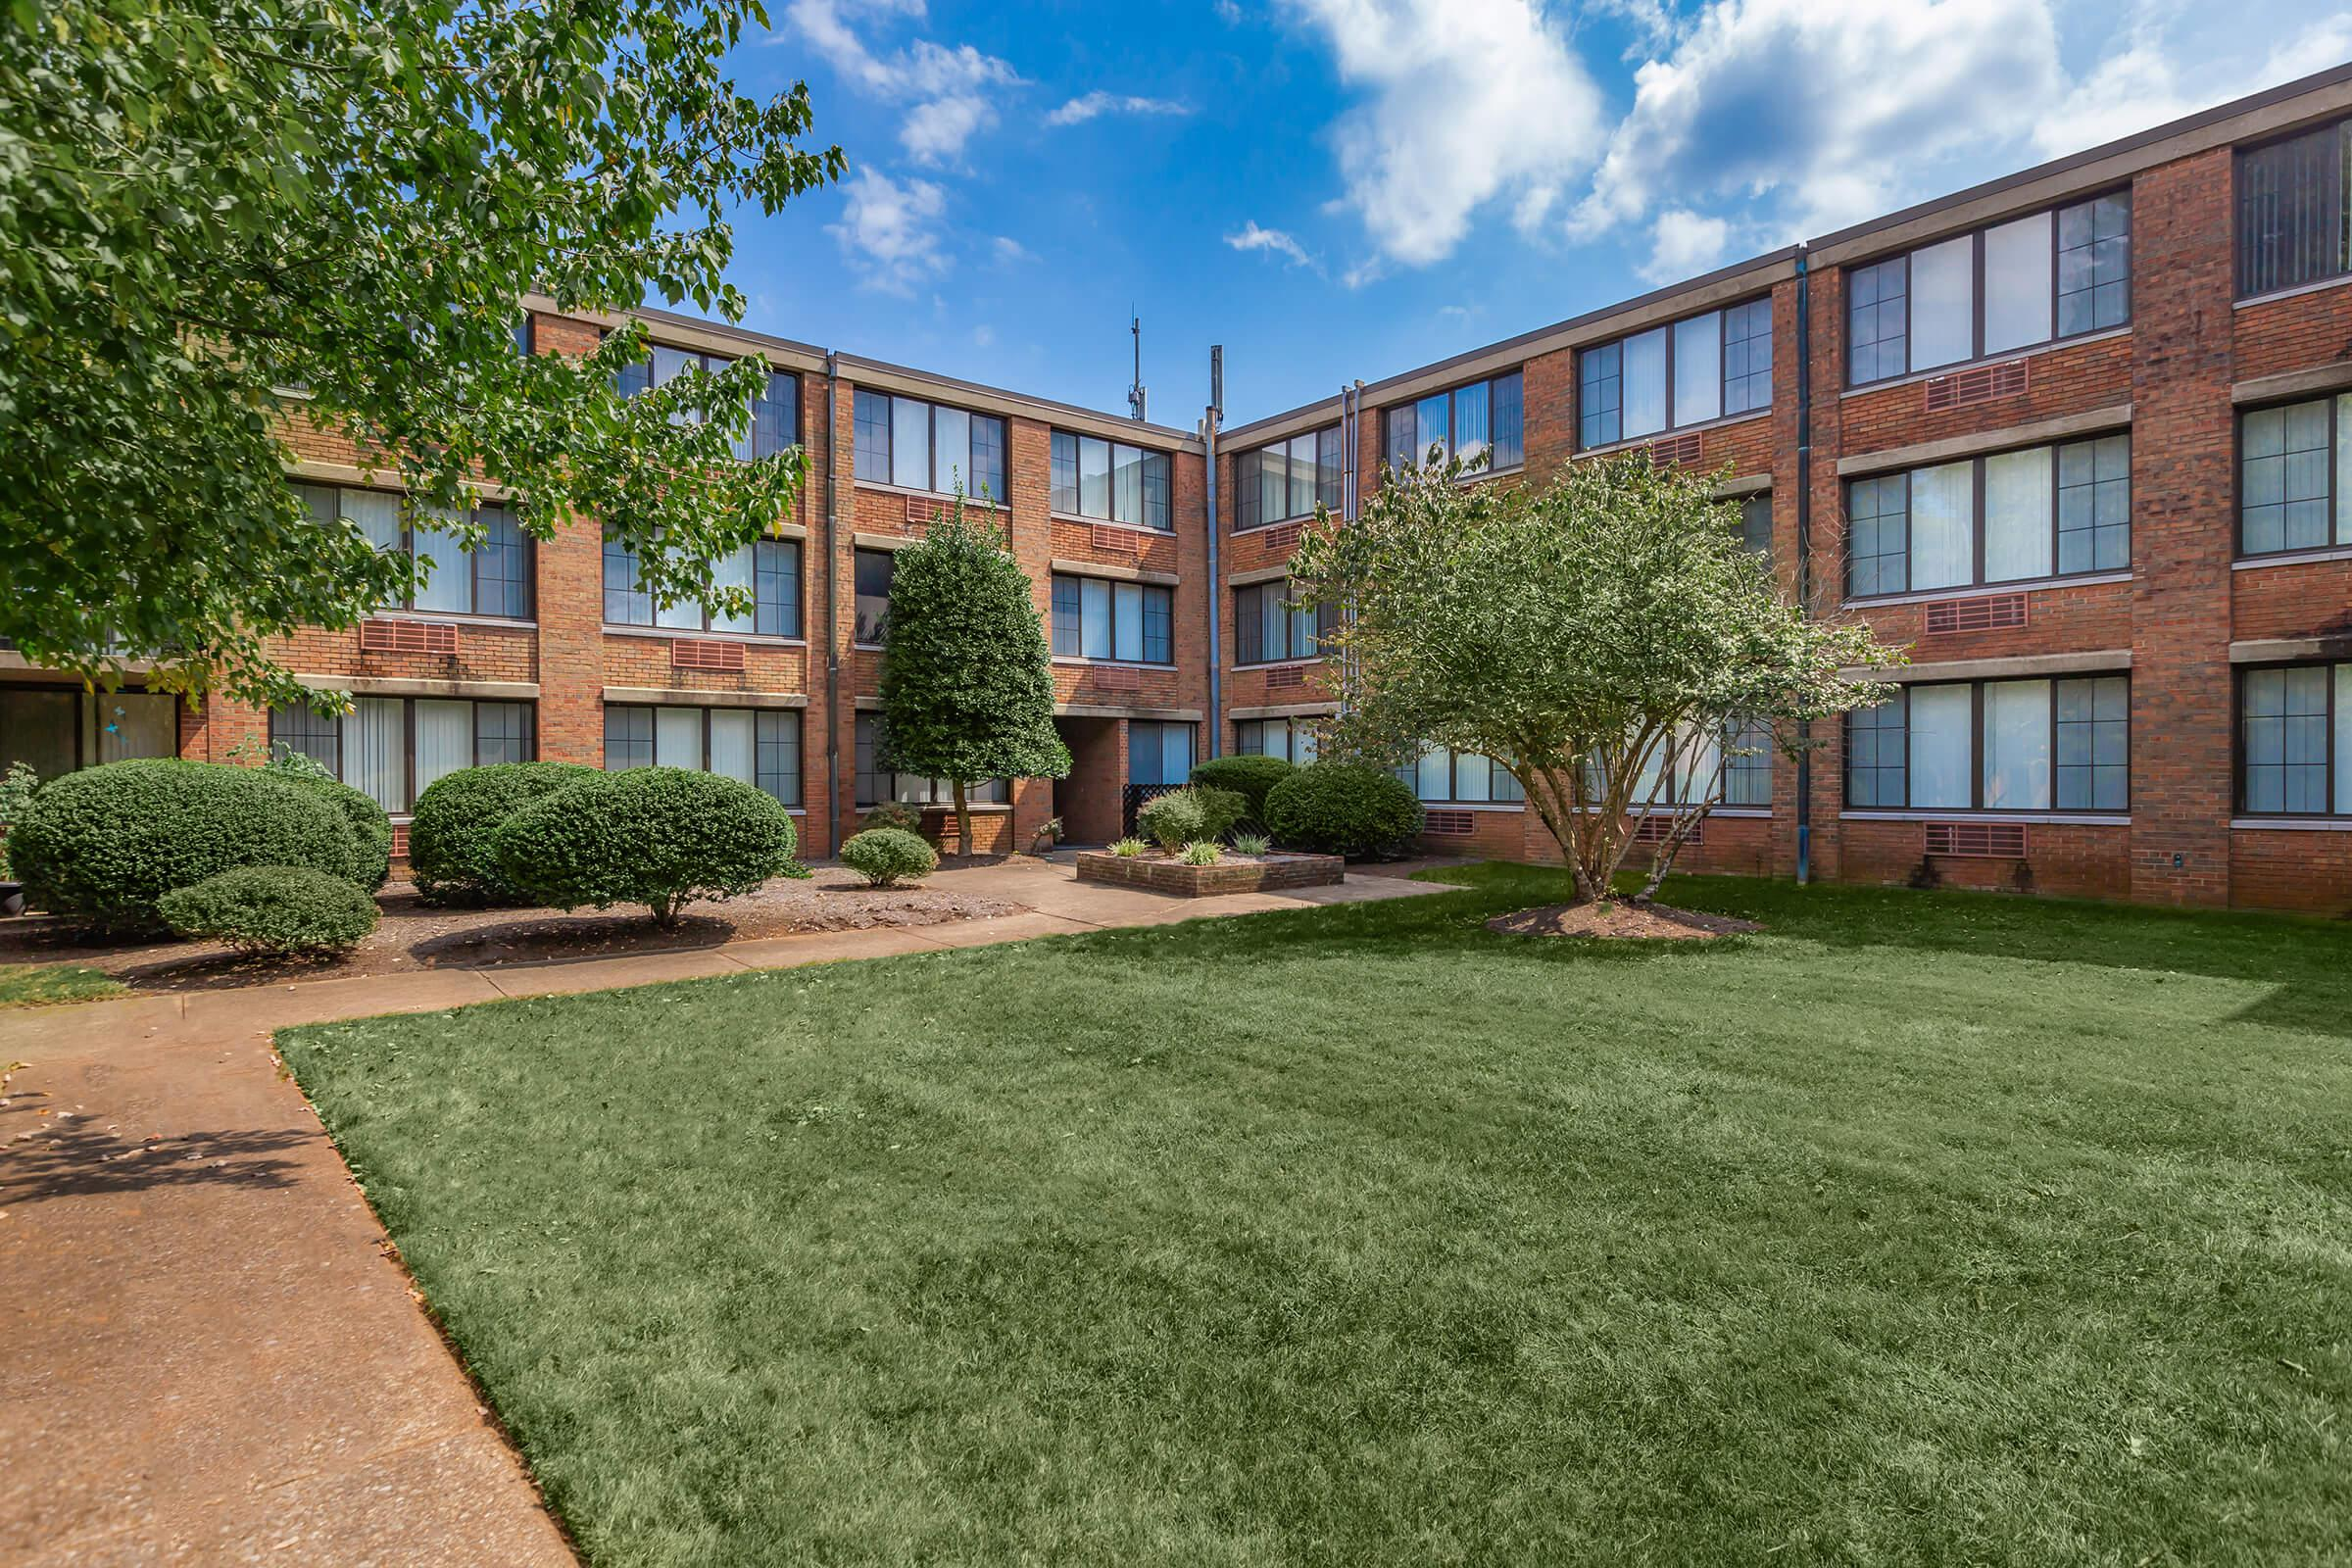 TWO BR APARTMENTS FOR RENT IN KNOXVILLE, TENNESSEE